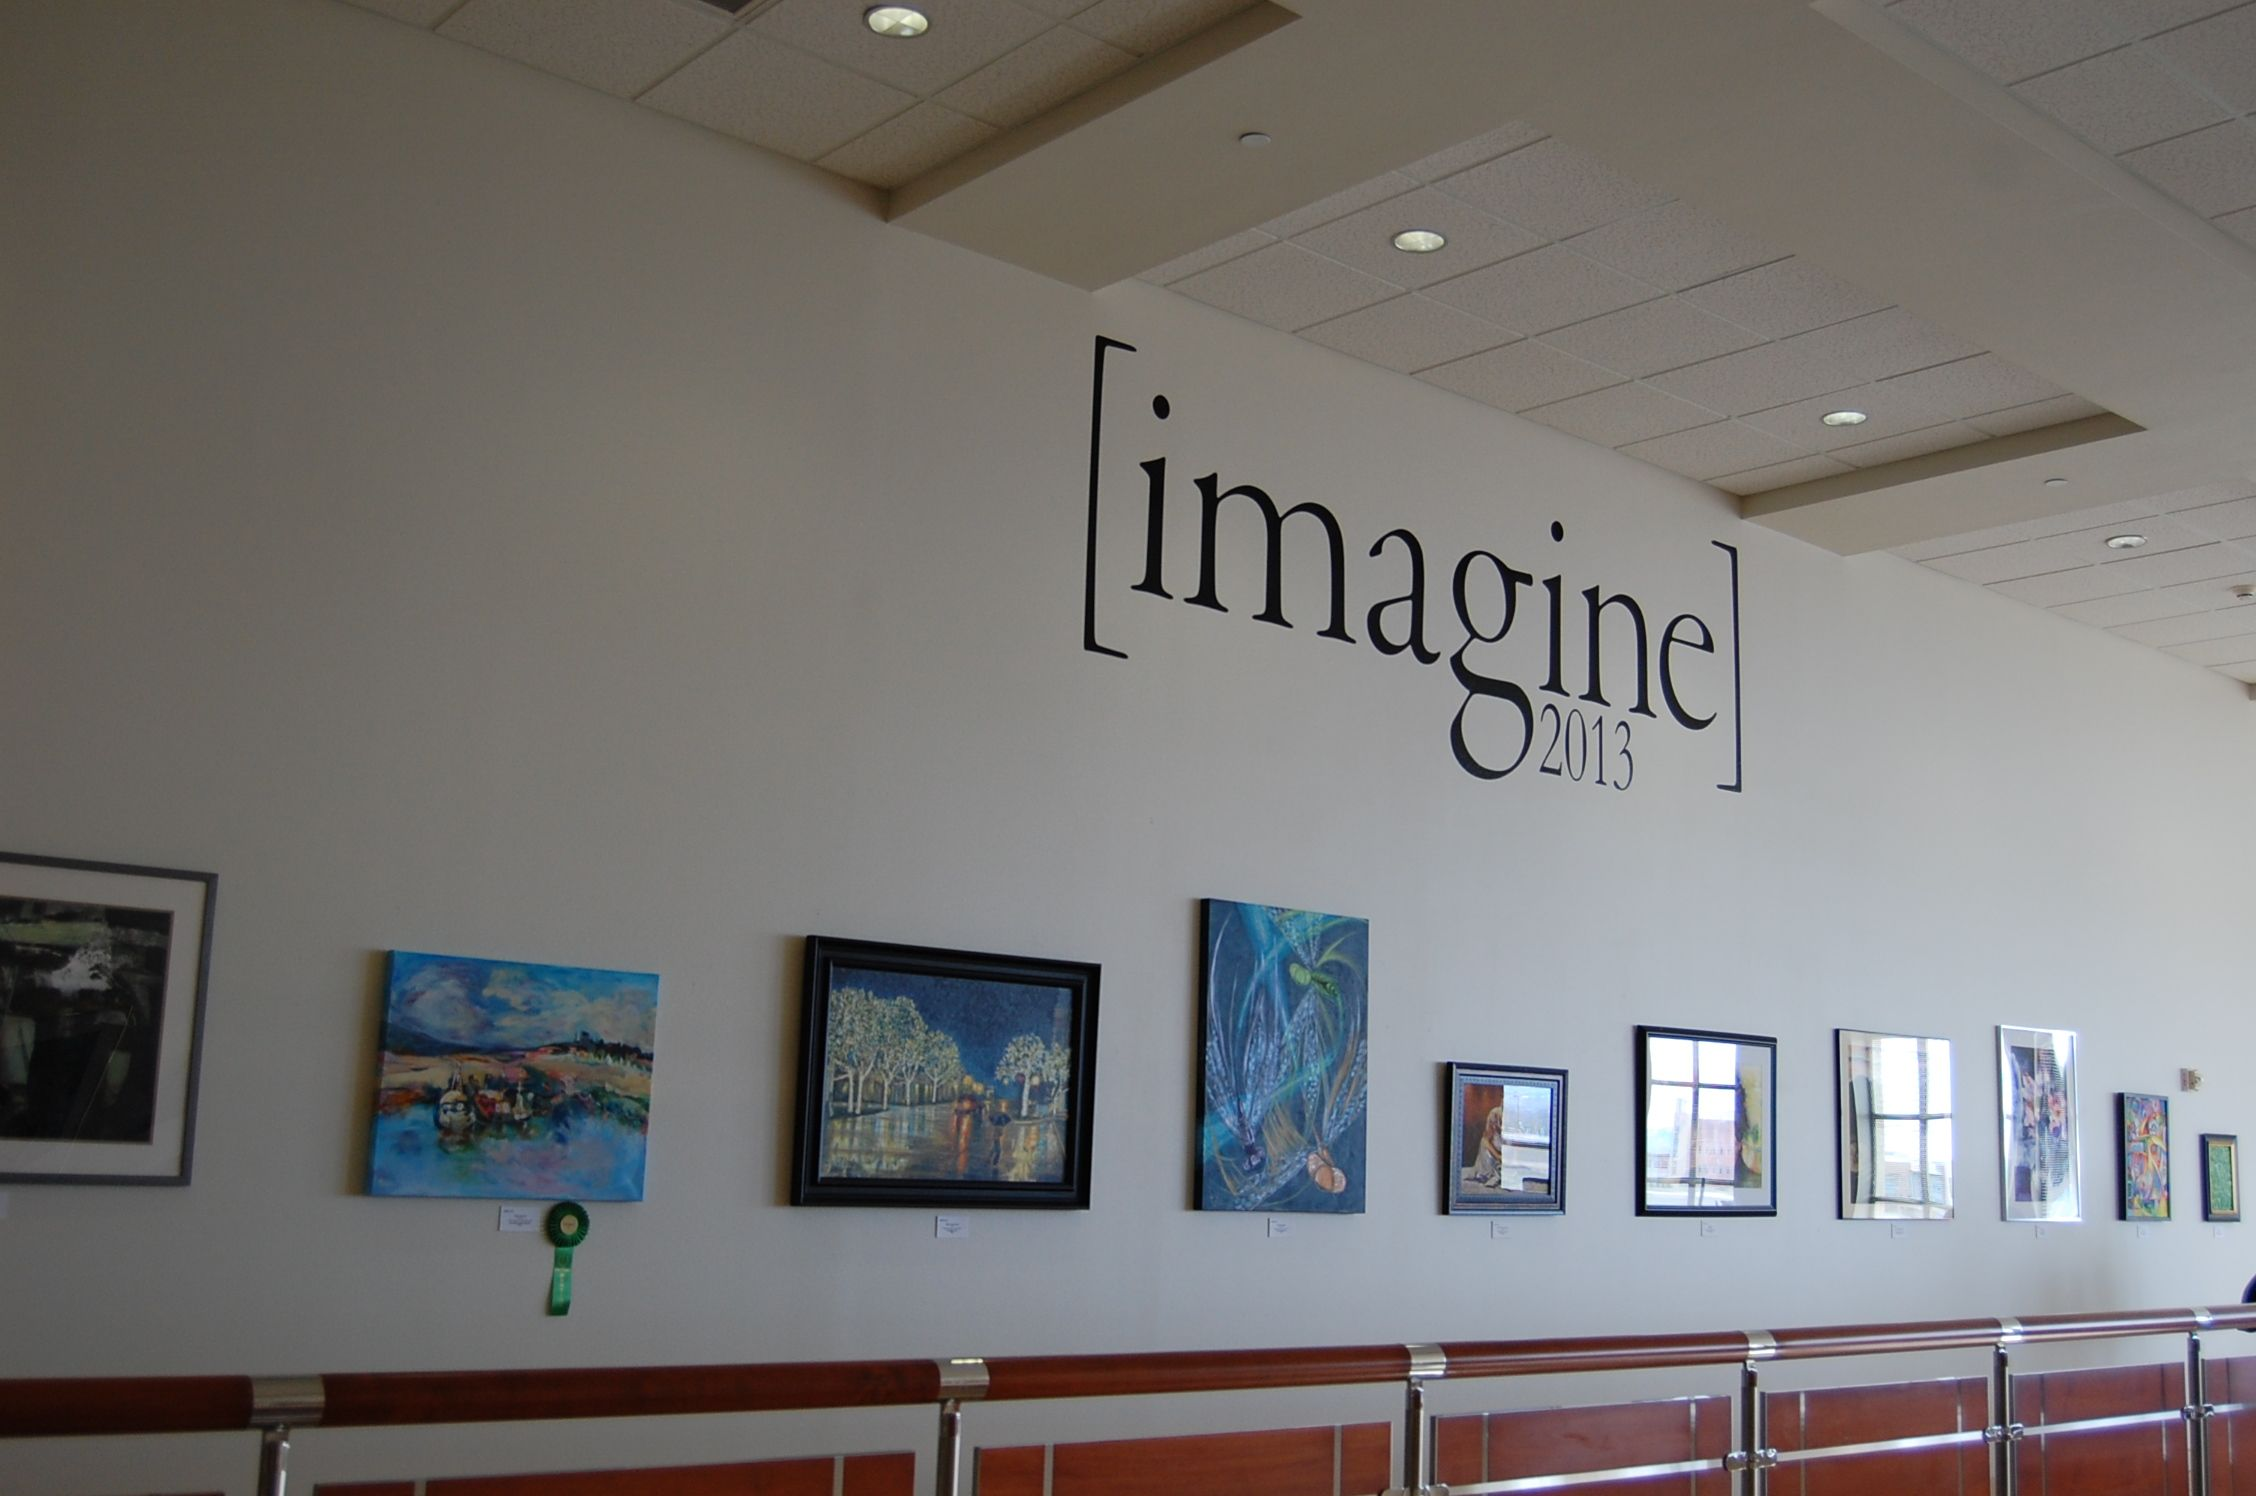 Imagine 2013 art exhibit in the avery building at the